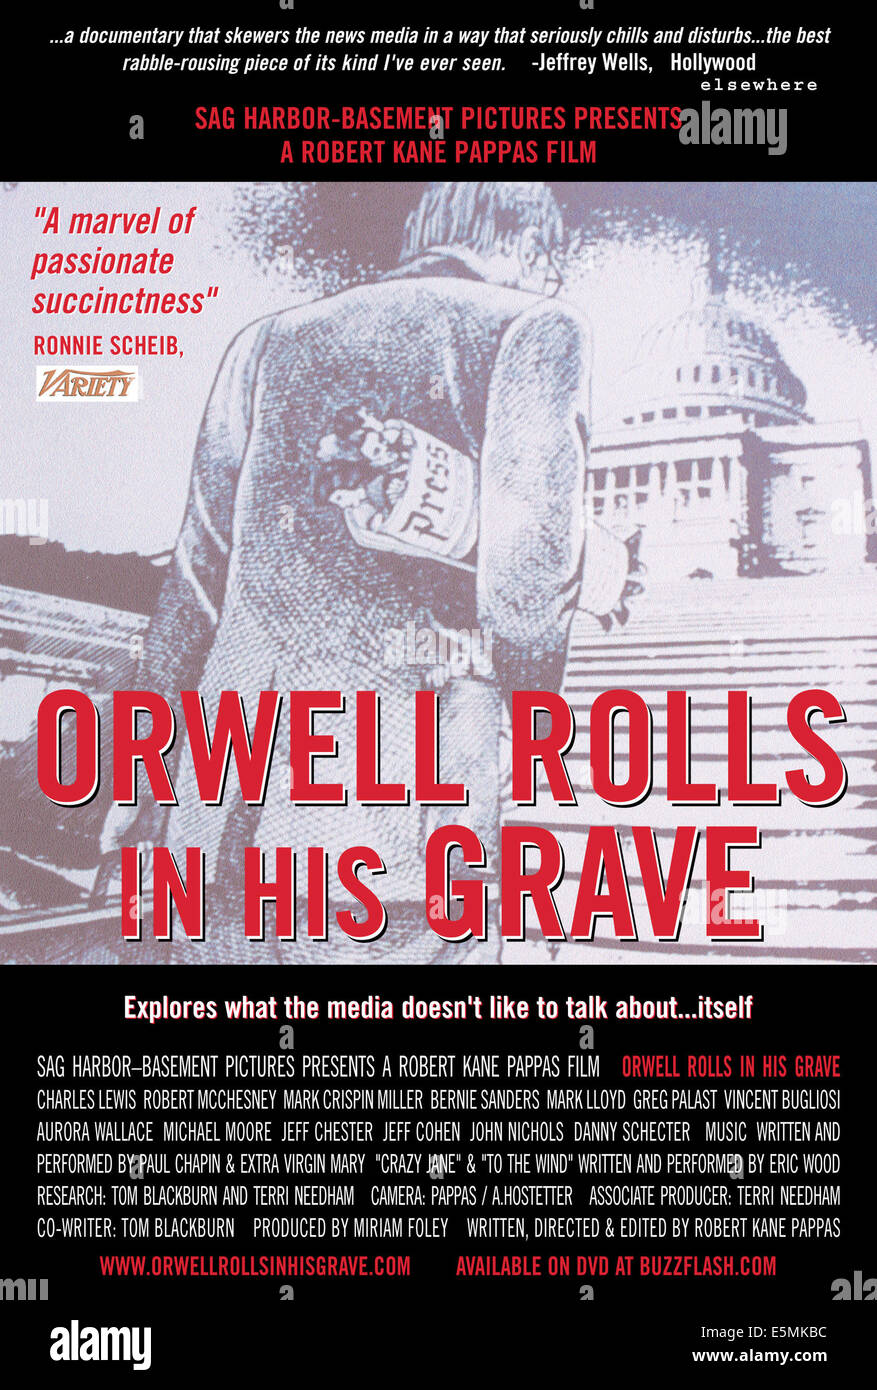 ORWELL ROLLS IN HIS GRAVE, 2003, (c) Sag Harbor-Basement/courtesy Everett Collection - Stock Image